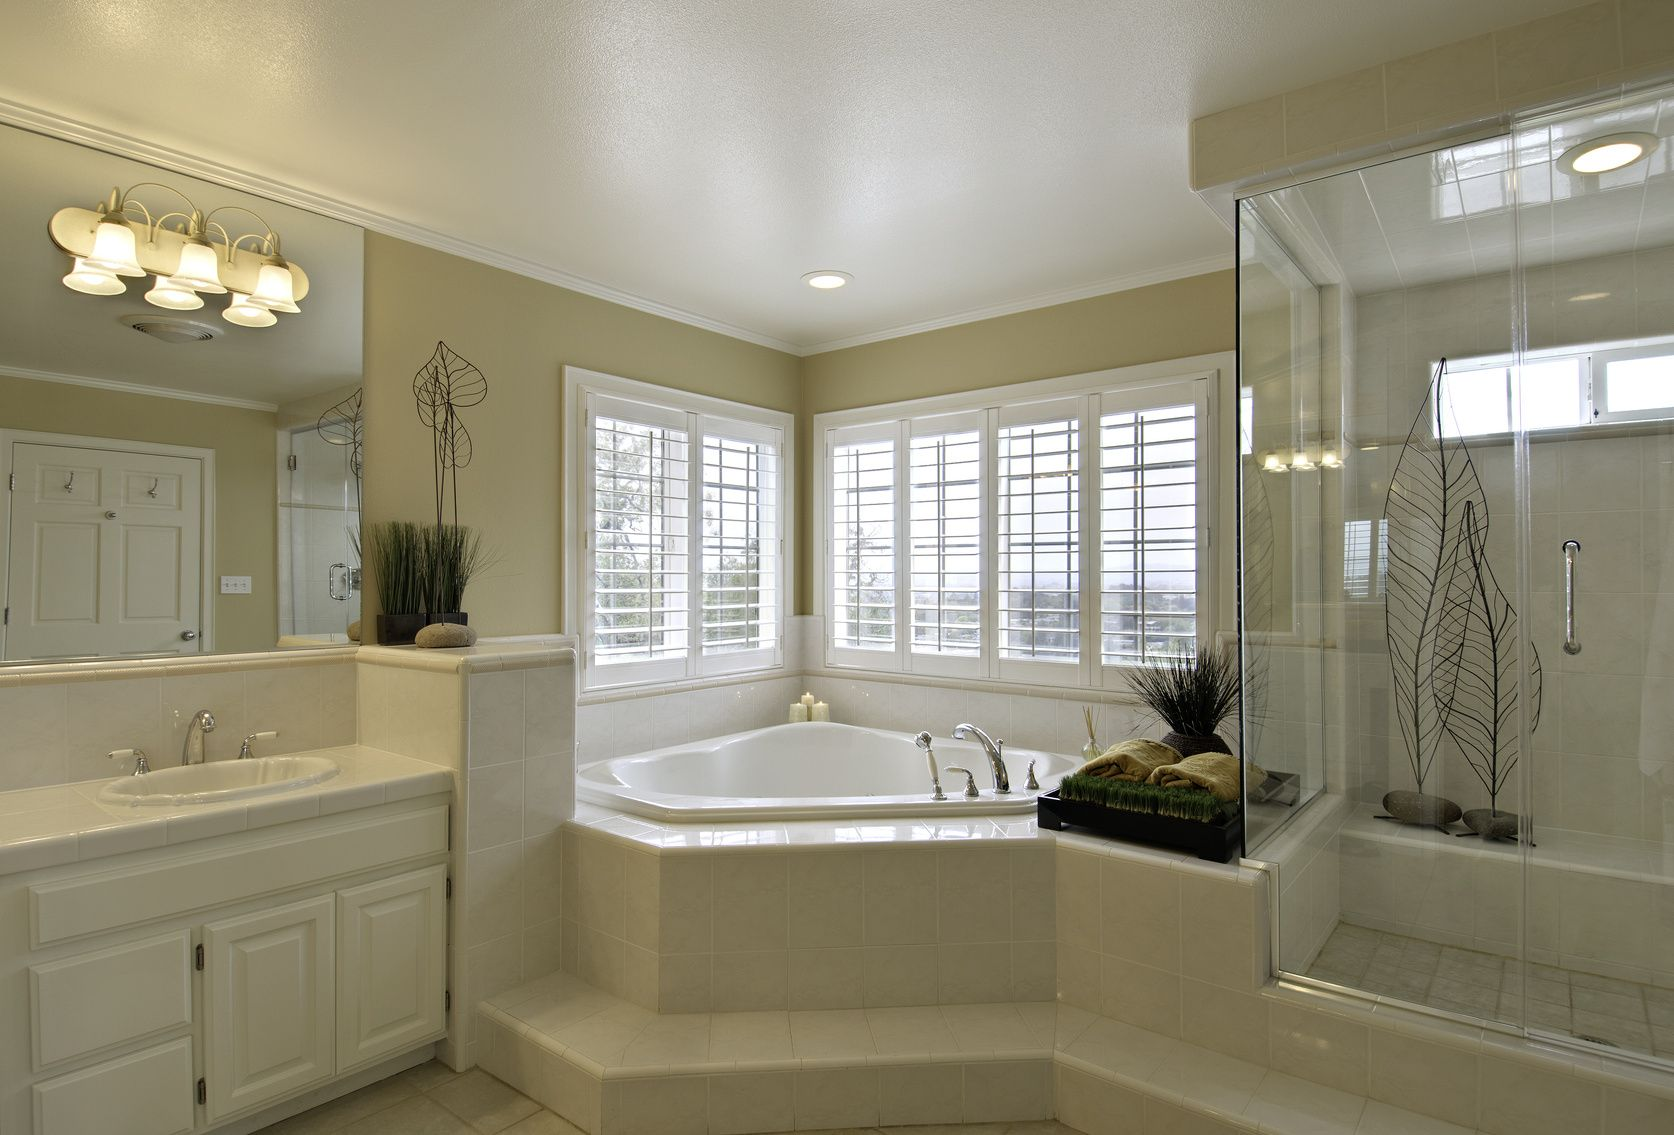 Bathroom Remodeling Take Advantage Of These Excellent Layout And Design Tips